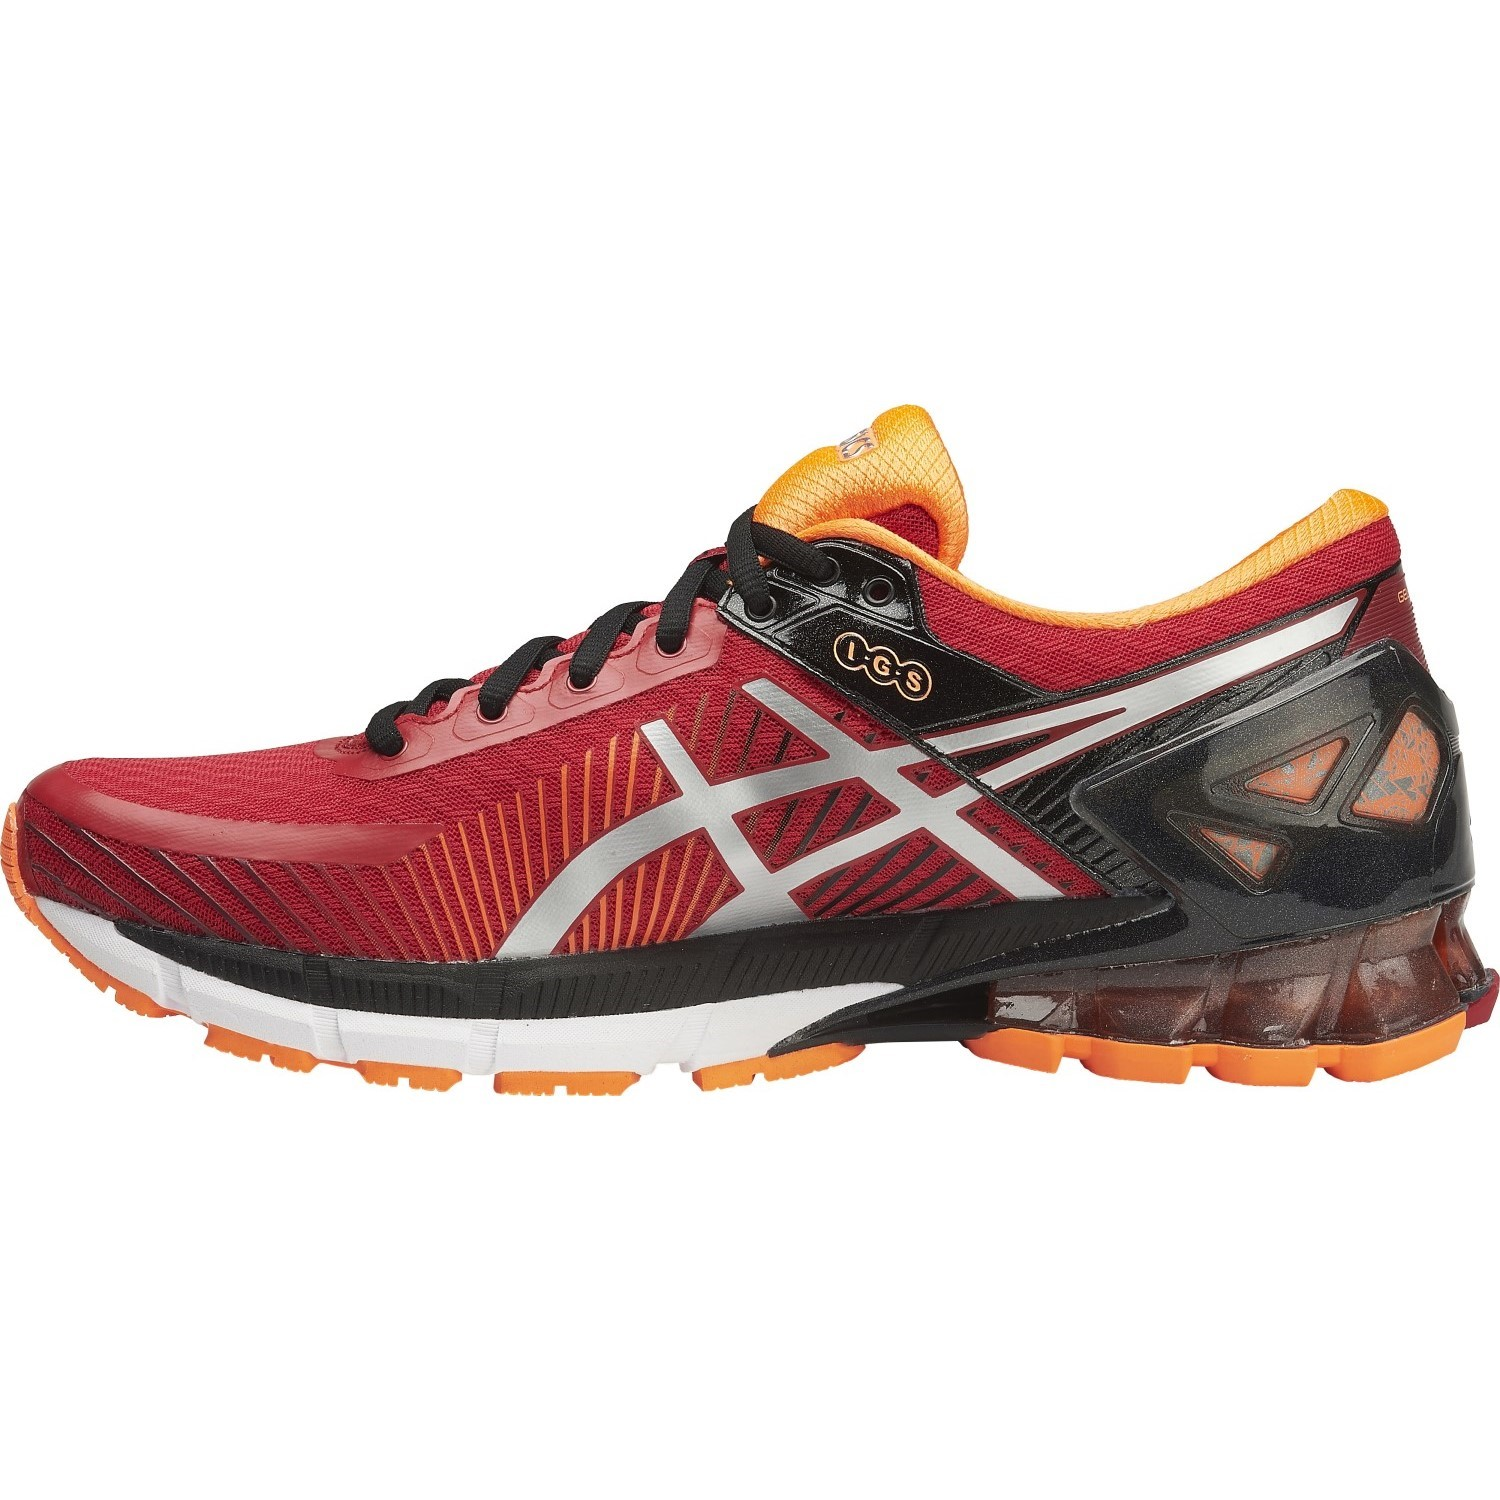 asics kinsei 6 mens running shoes true red silver hot orange online sportitude. Black Bedroom Furniture Sets. Home Design Ideas